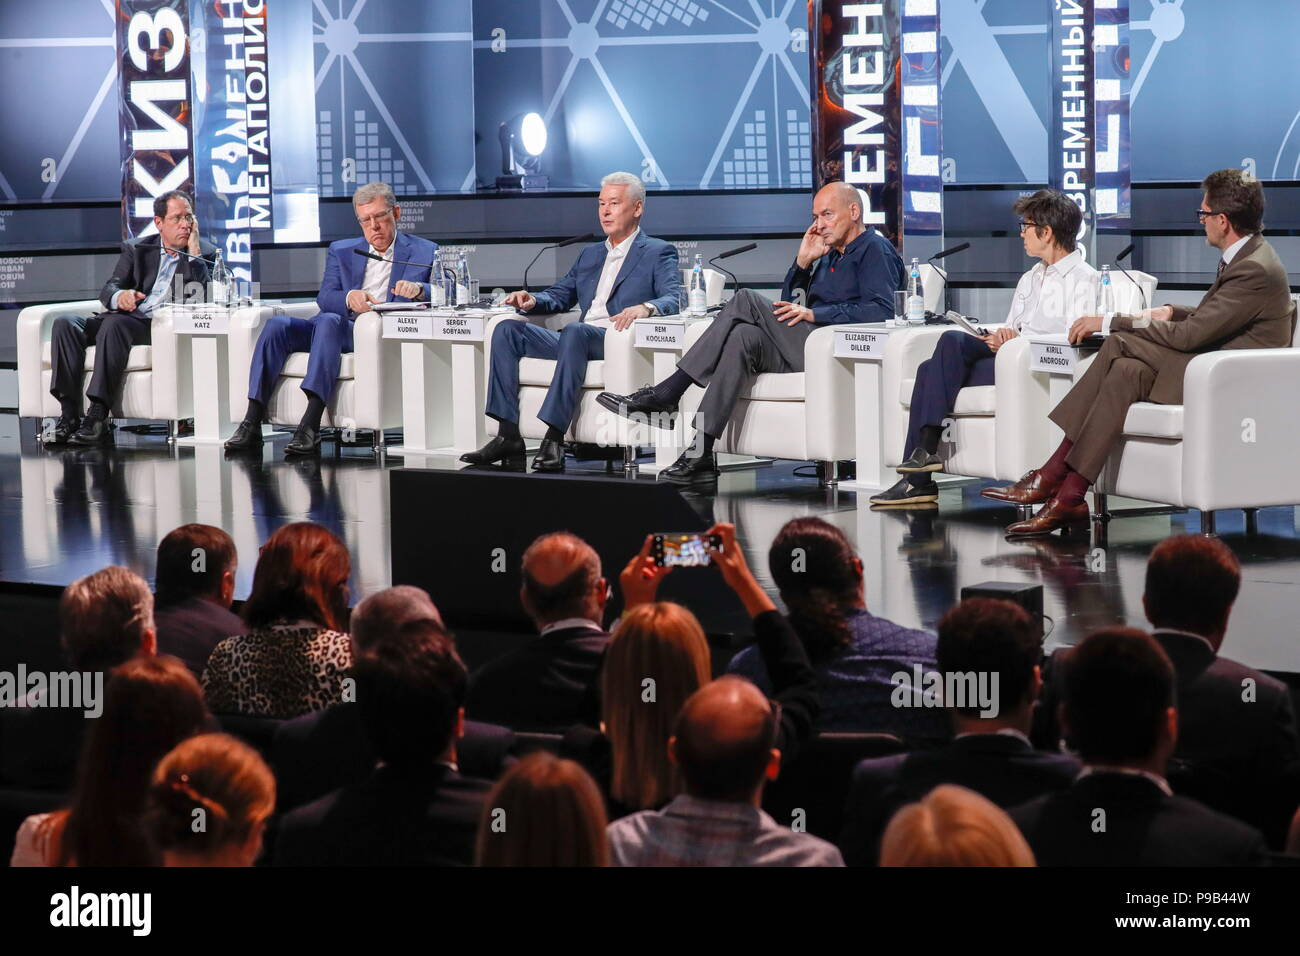 Moscow, Russia. 17th July, 2018. MOSCOW, RUSSIA - JULY 17, 2018: New Localism Advisors co-founder Bruce Katz, Russian Audit Chamber Chairman Alexei Kudrin, Moscow Mayor Sergei Sobyanin, Dutch architect Rem Koolhaas, Elizabeth Diller, founding partner of Diller Scofidio   Renfro (DS R) and Professor of Architecture at Princeton University School of Architecture, and Altera Investment Fund managing partner Kirill Androsov (L-R) at a plenary session of the 2018 Moscow Urban Forum in Moscow's Zaryadye Park. Mikhail Japaridze/TASS Credit: ITAR-TASS News Agency/Alamy Live News Stock Photo